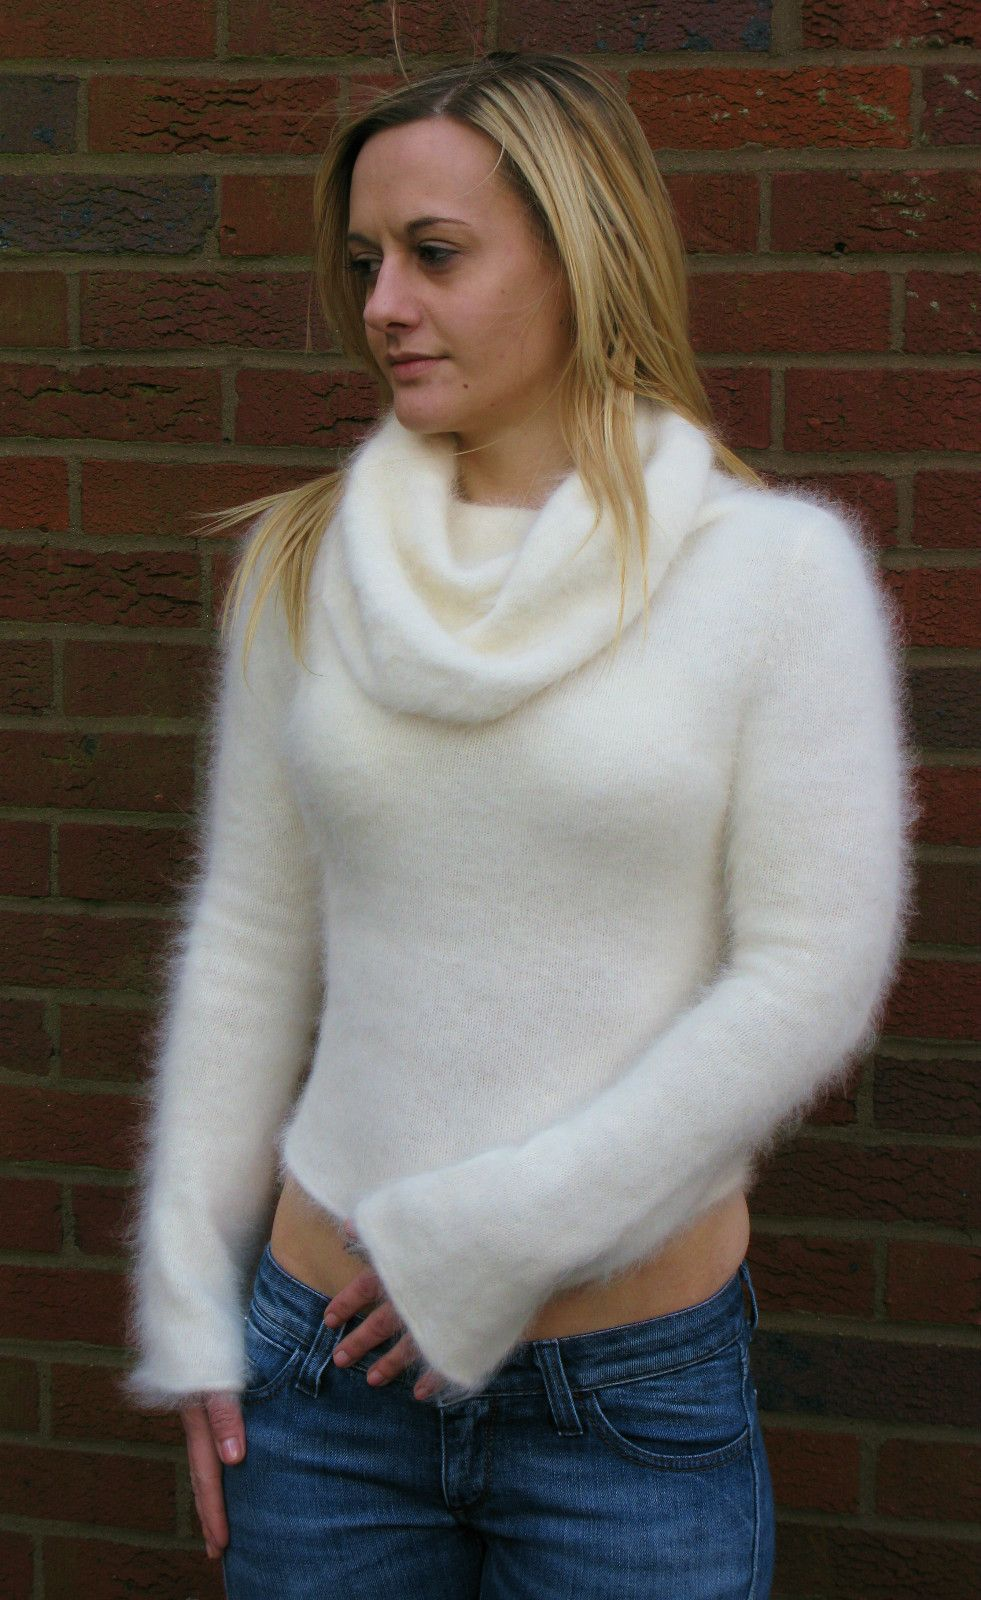 Very fluffy soft white angora sweater | Angora and other fuzzy ...